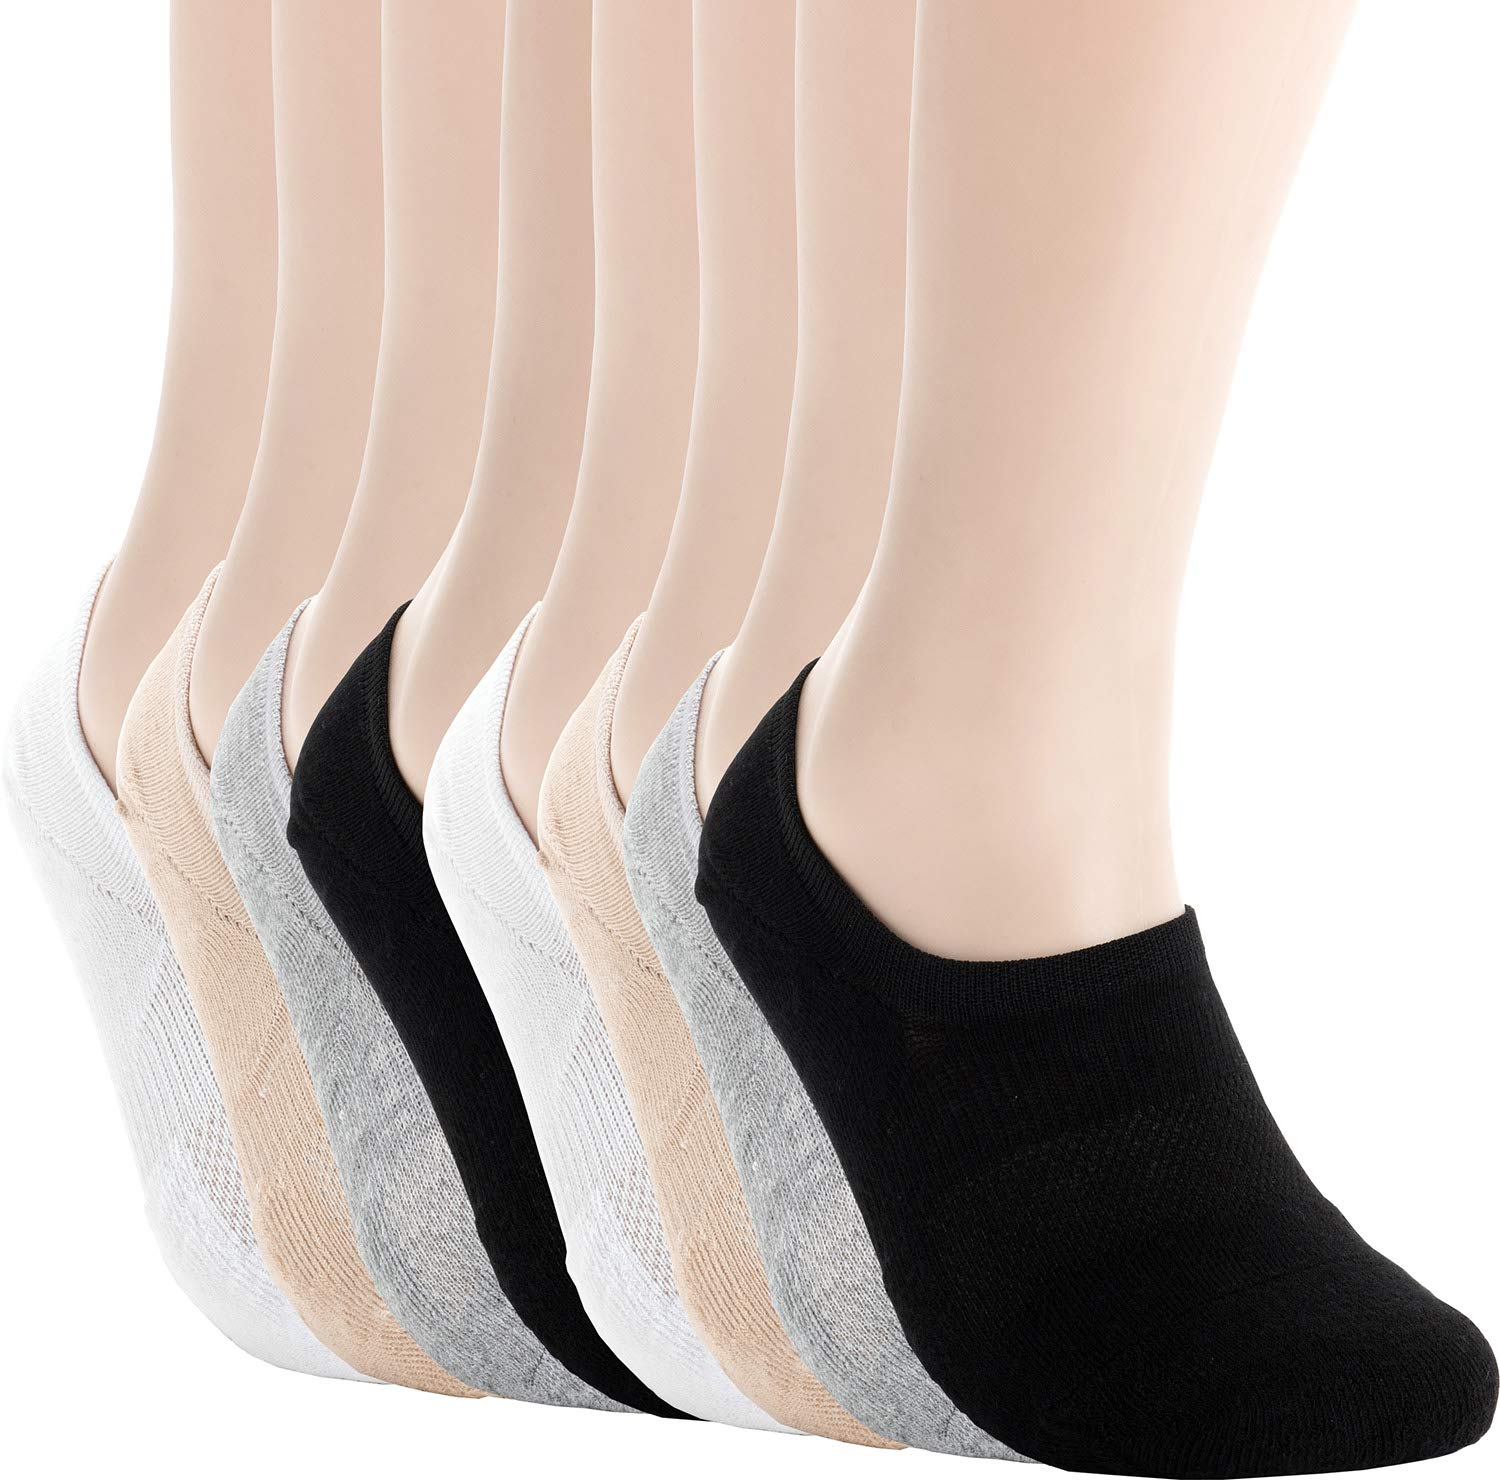 Pro Mountain Women's No Show Flat Cushion Cotton Footies Sneakers Sports Socks (S(US Women Shoes 5.5~7.5), Black White Grey Beige assorted 2 each total 8 pairs Pack S size) by Pro Mountain